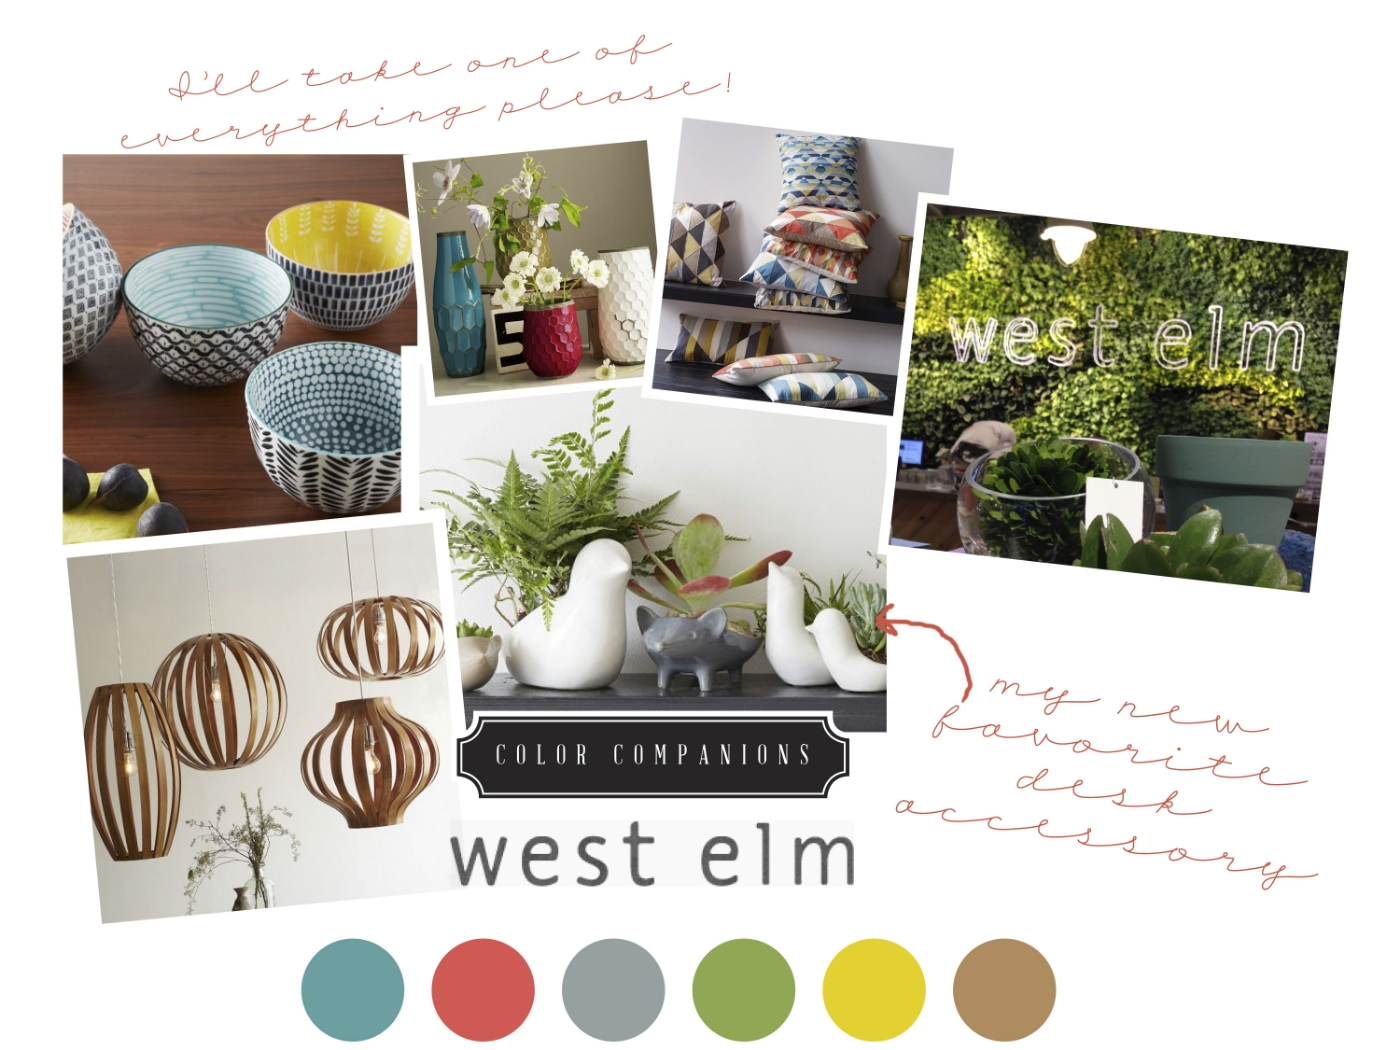 WestElm_Color.jpg